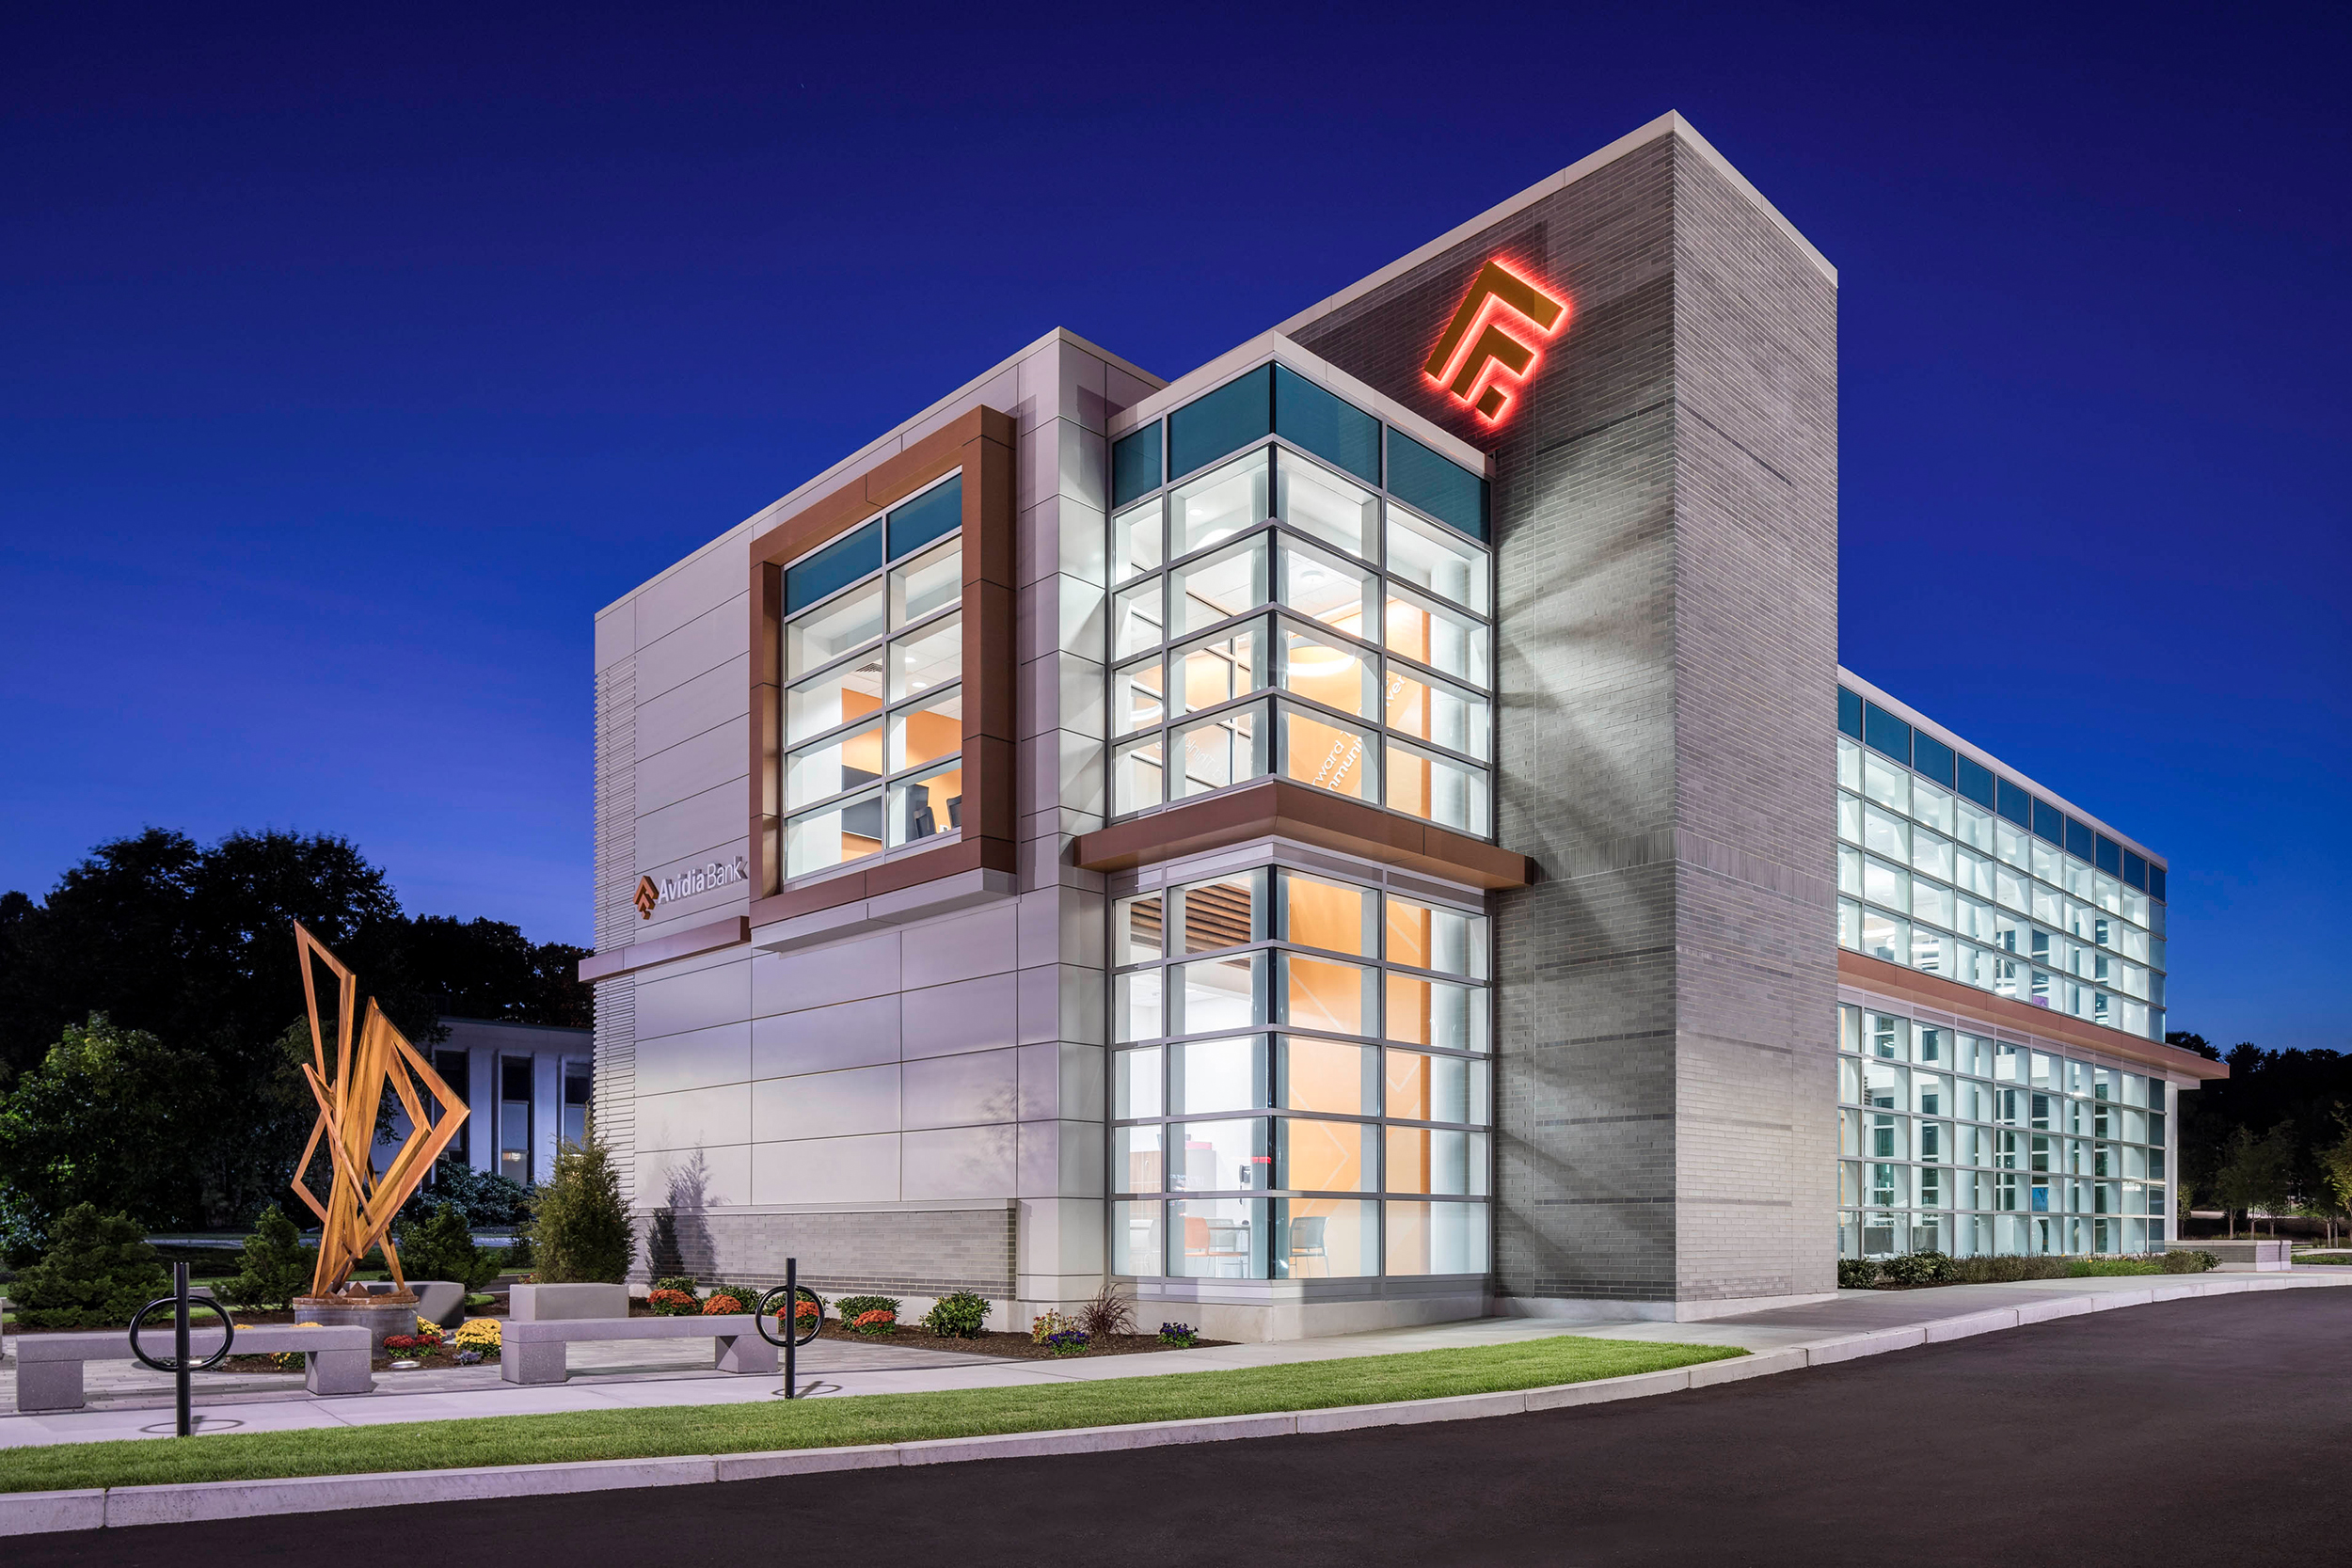 Avidia Bank at dusk in Framingham MA. Architectural designby Studio Q Architecture.